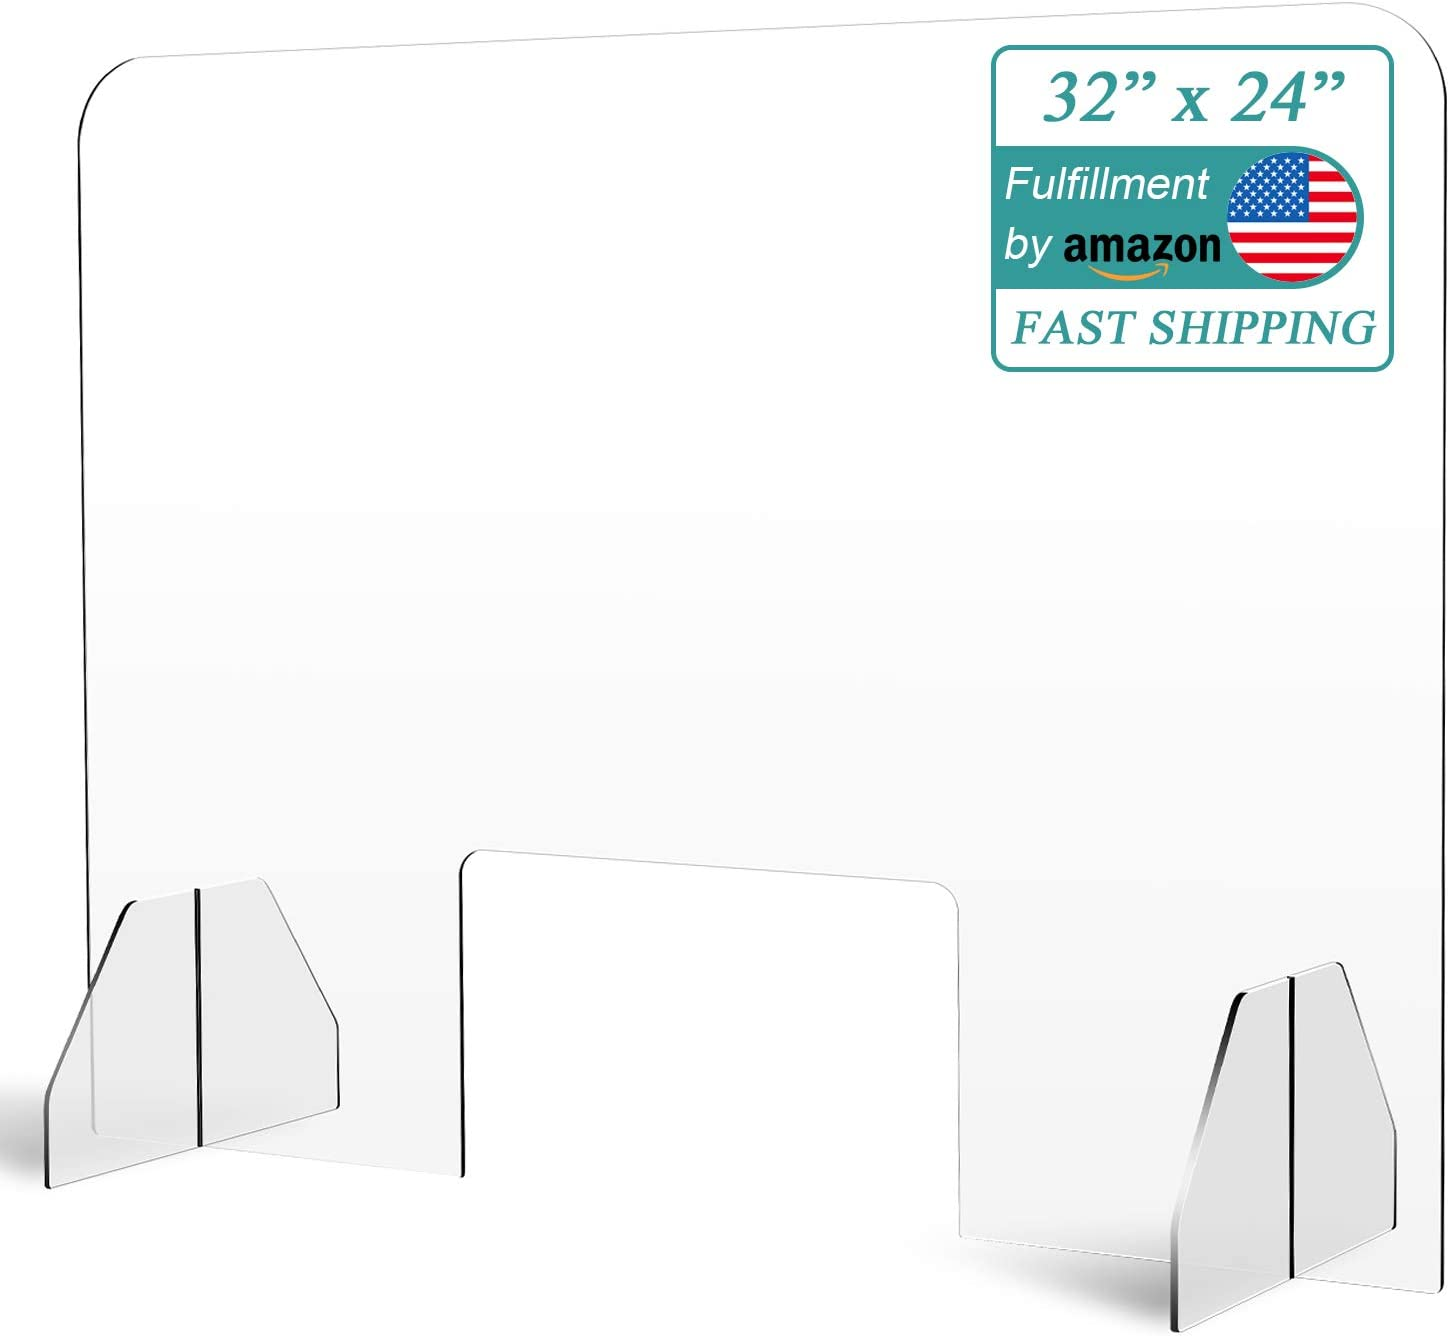 """i-FSK Protective Sneeze Guard (24""""High x 32""""Wide) - Portable Acrylic Divider Plexiglass Barrier Protection Shield for Checkout Counter Desk"""